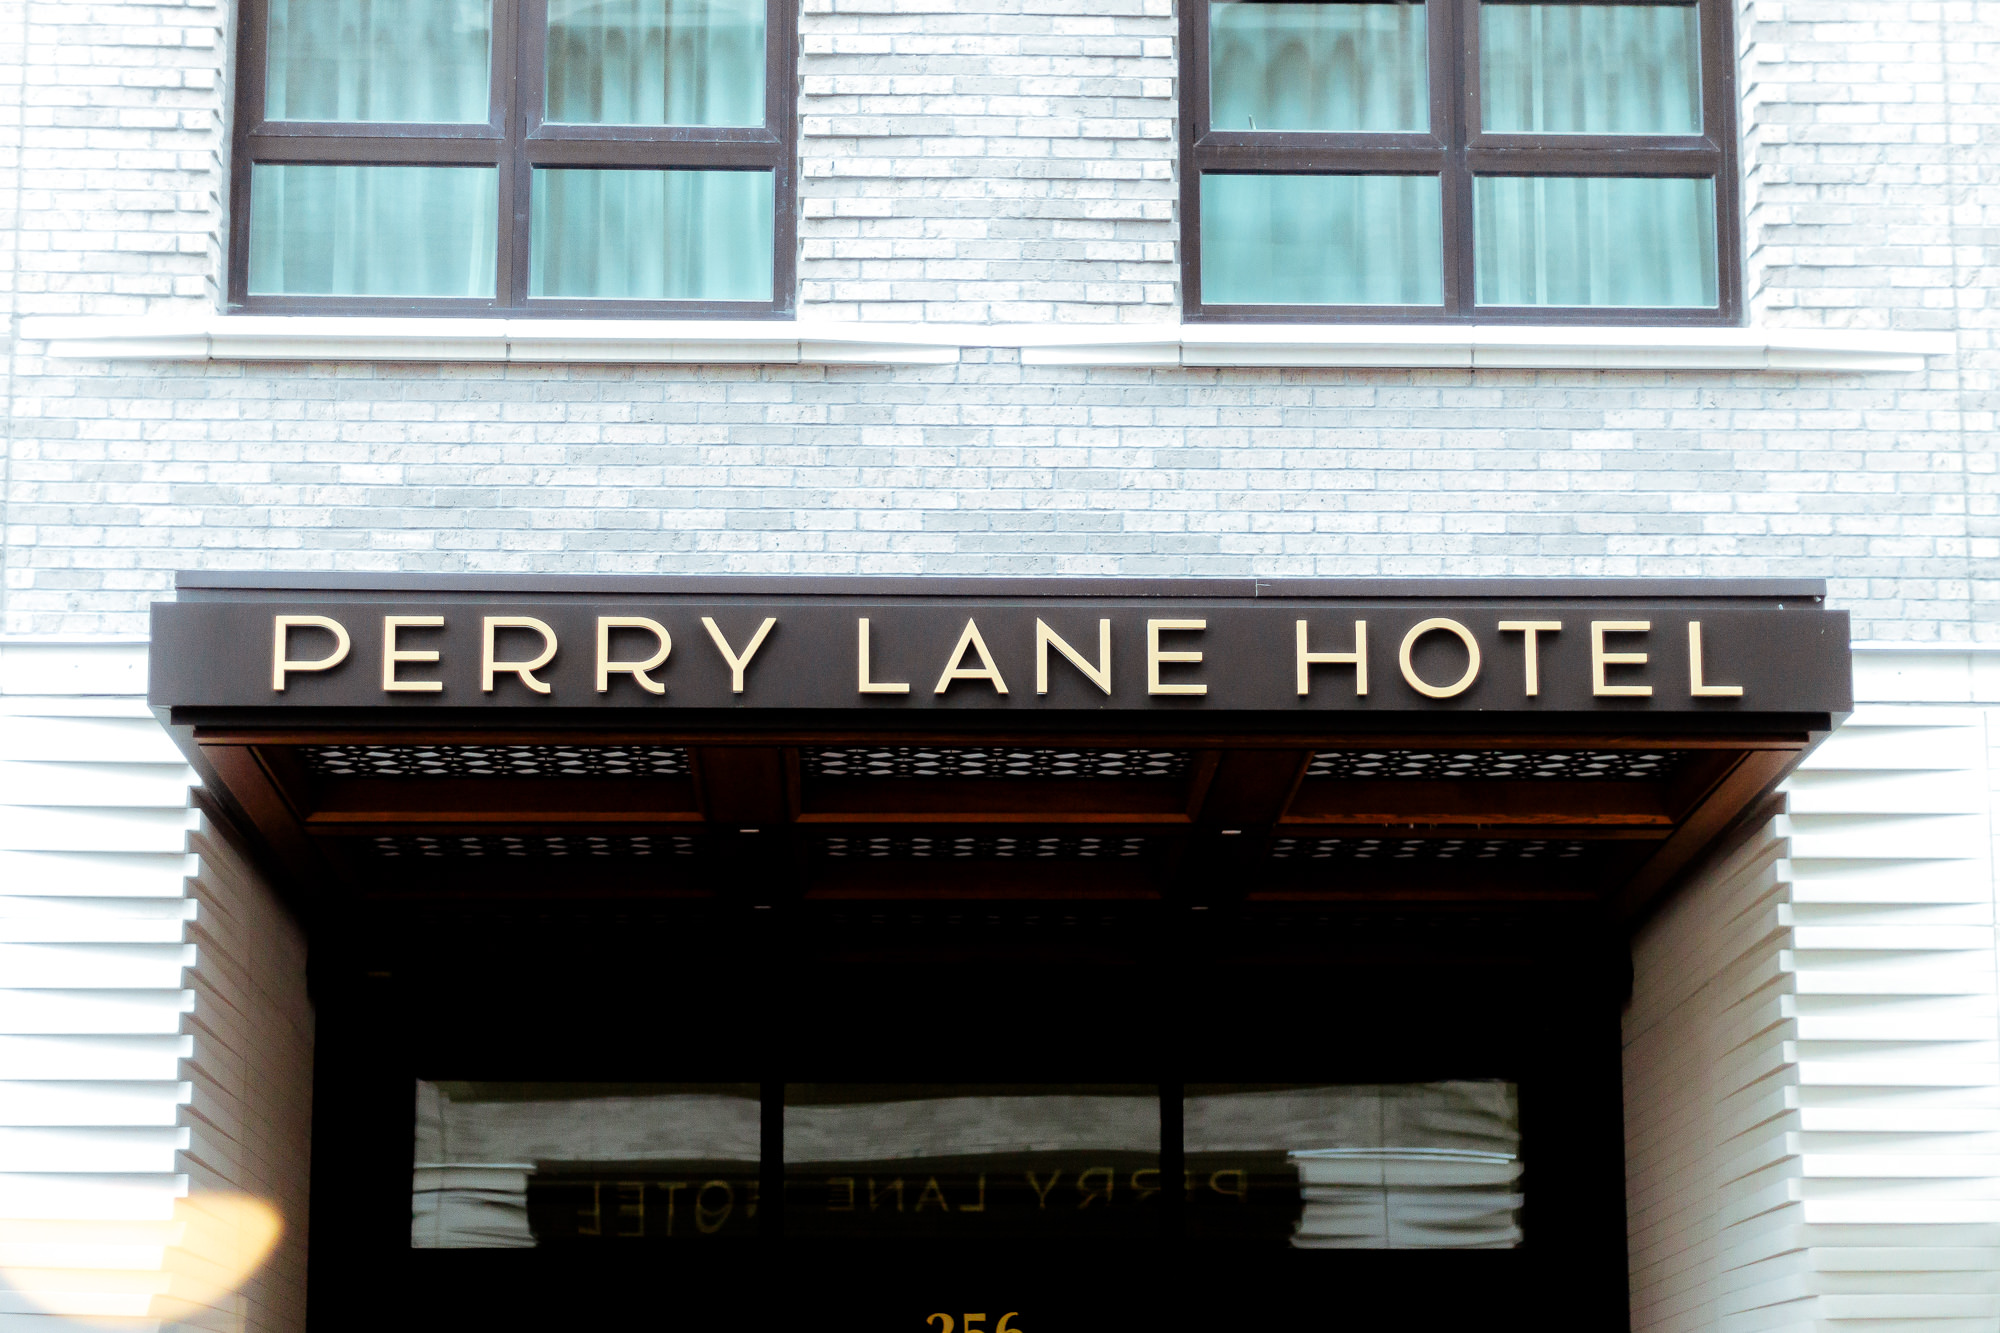 perry-lane-hotel-hotel-entrance-savannah-georgia